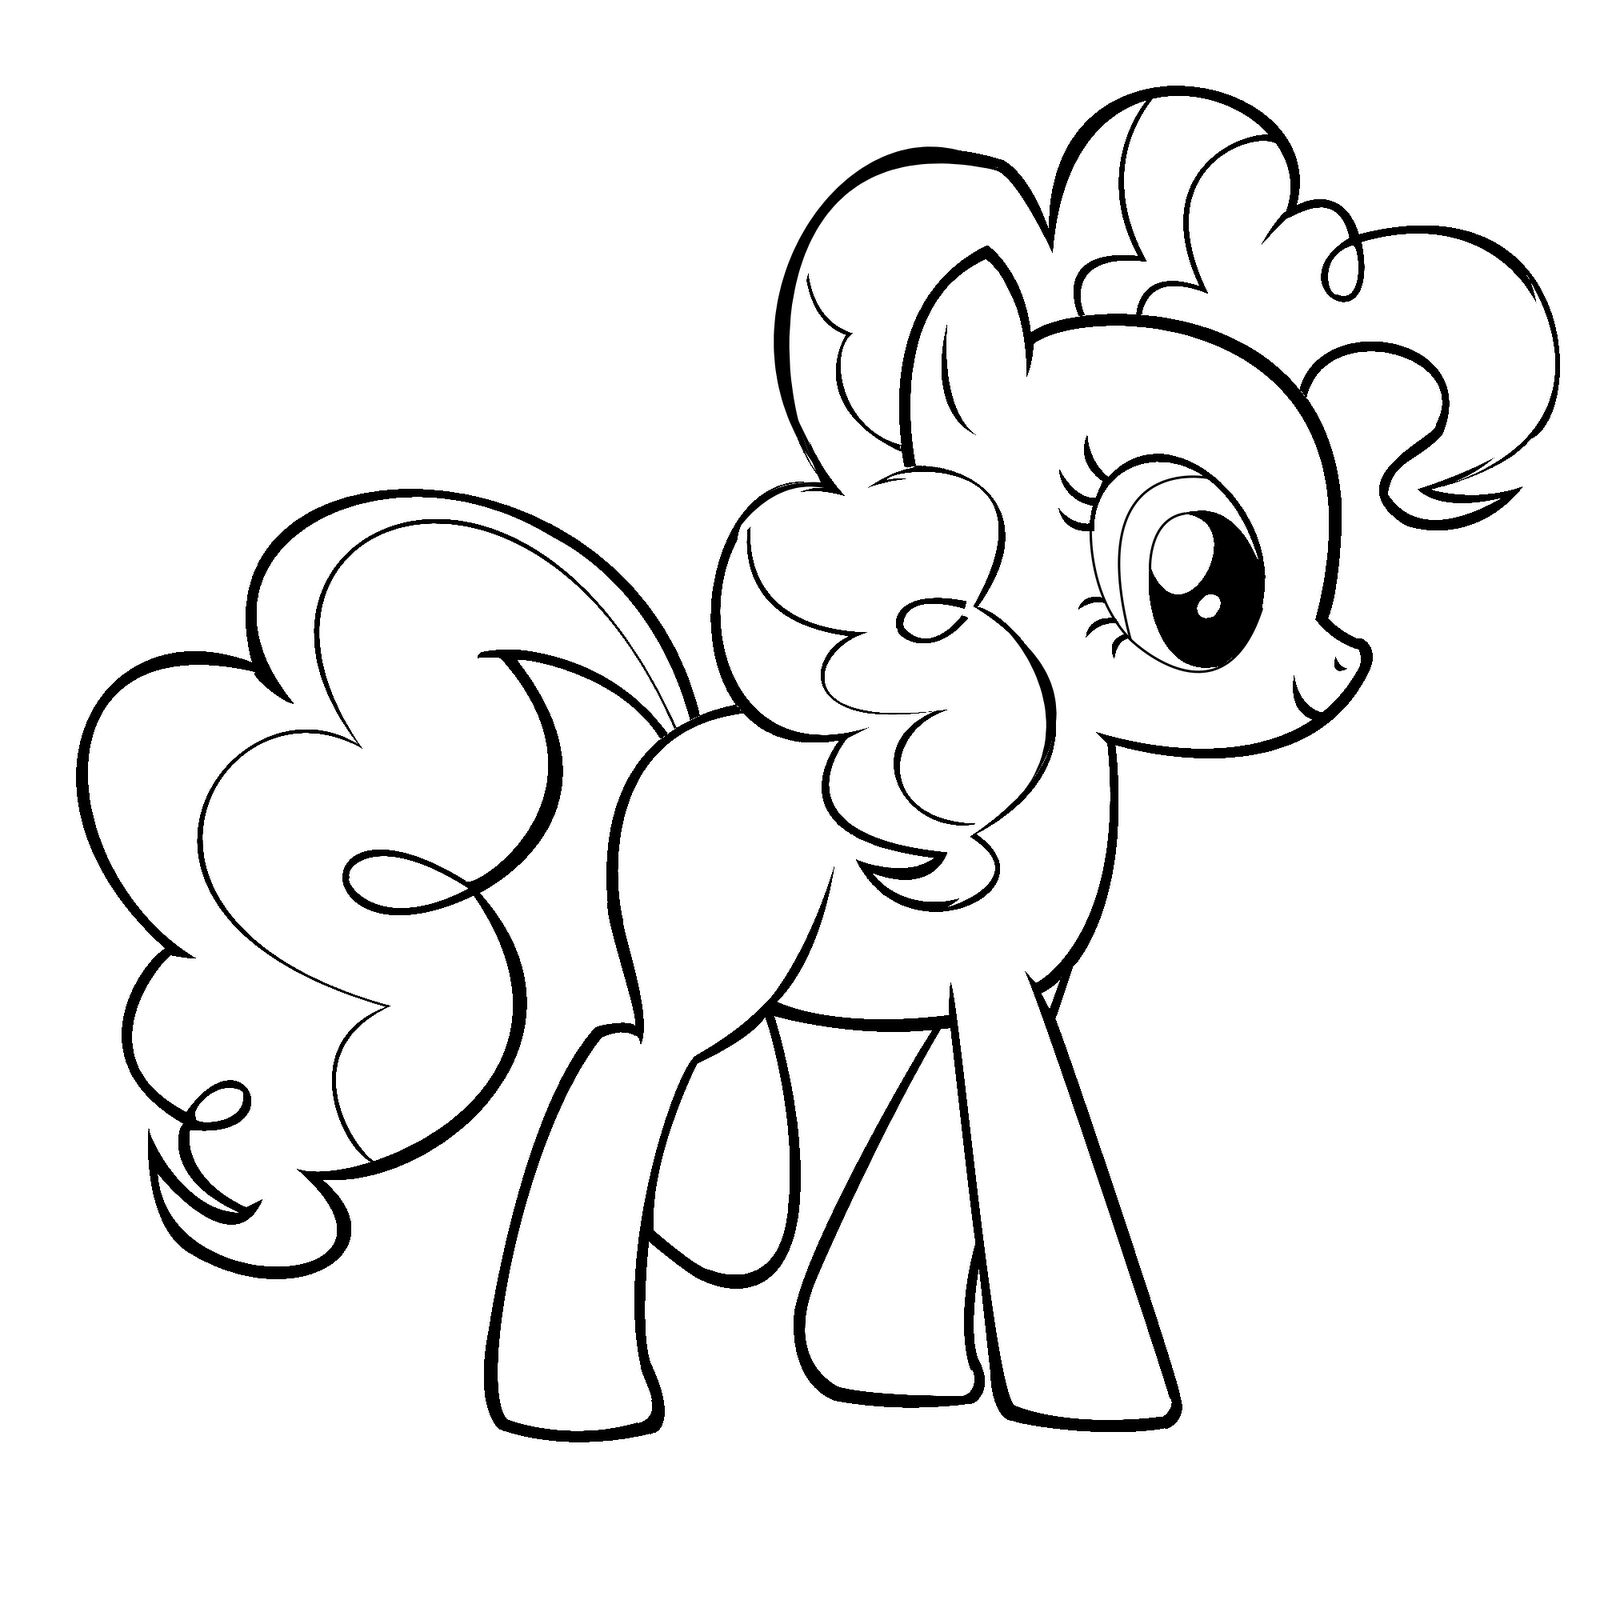 mlp colouring my little pony coloring pages mlp colouring